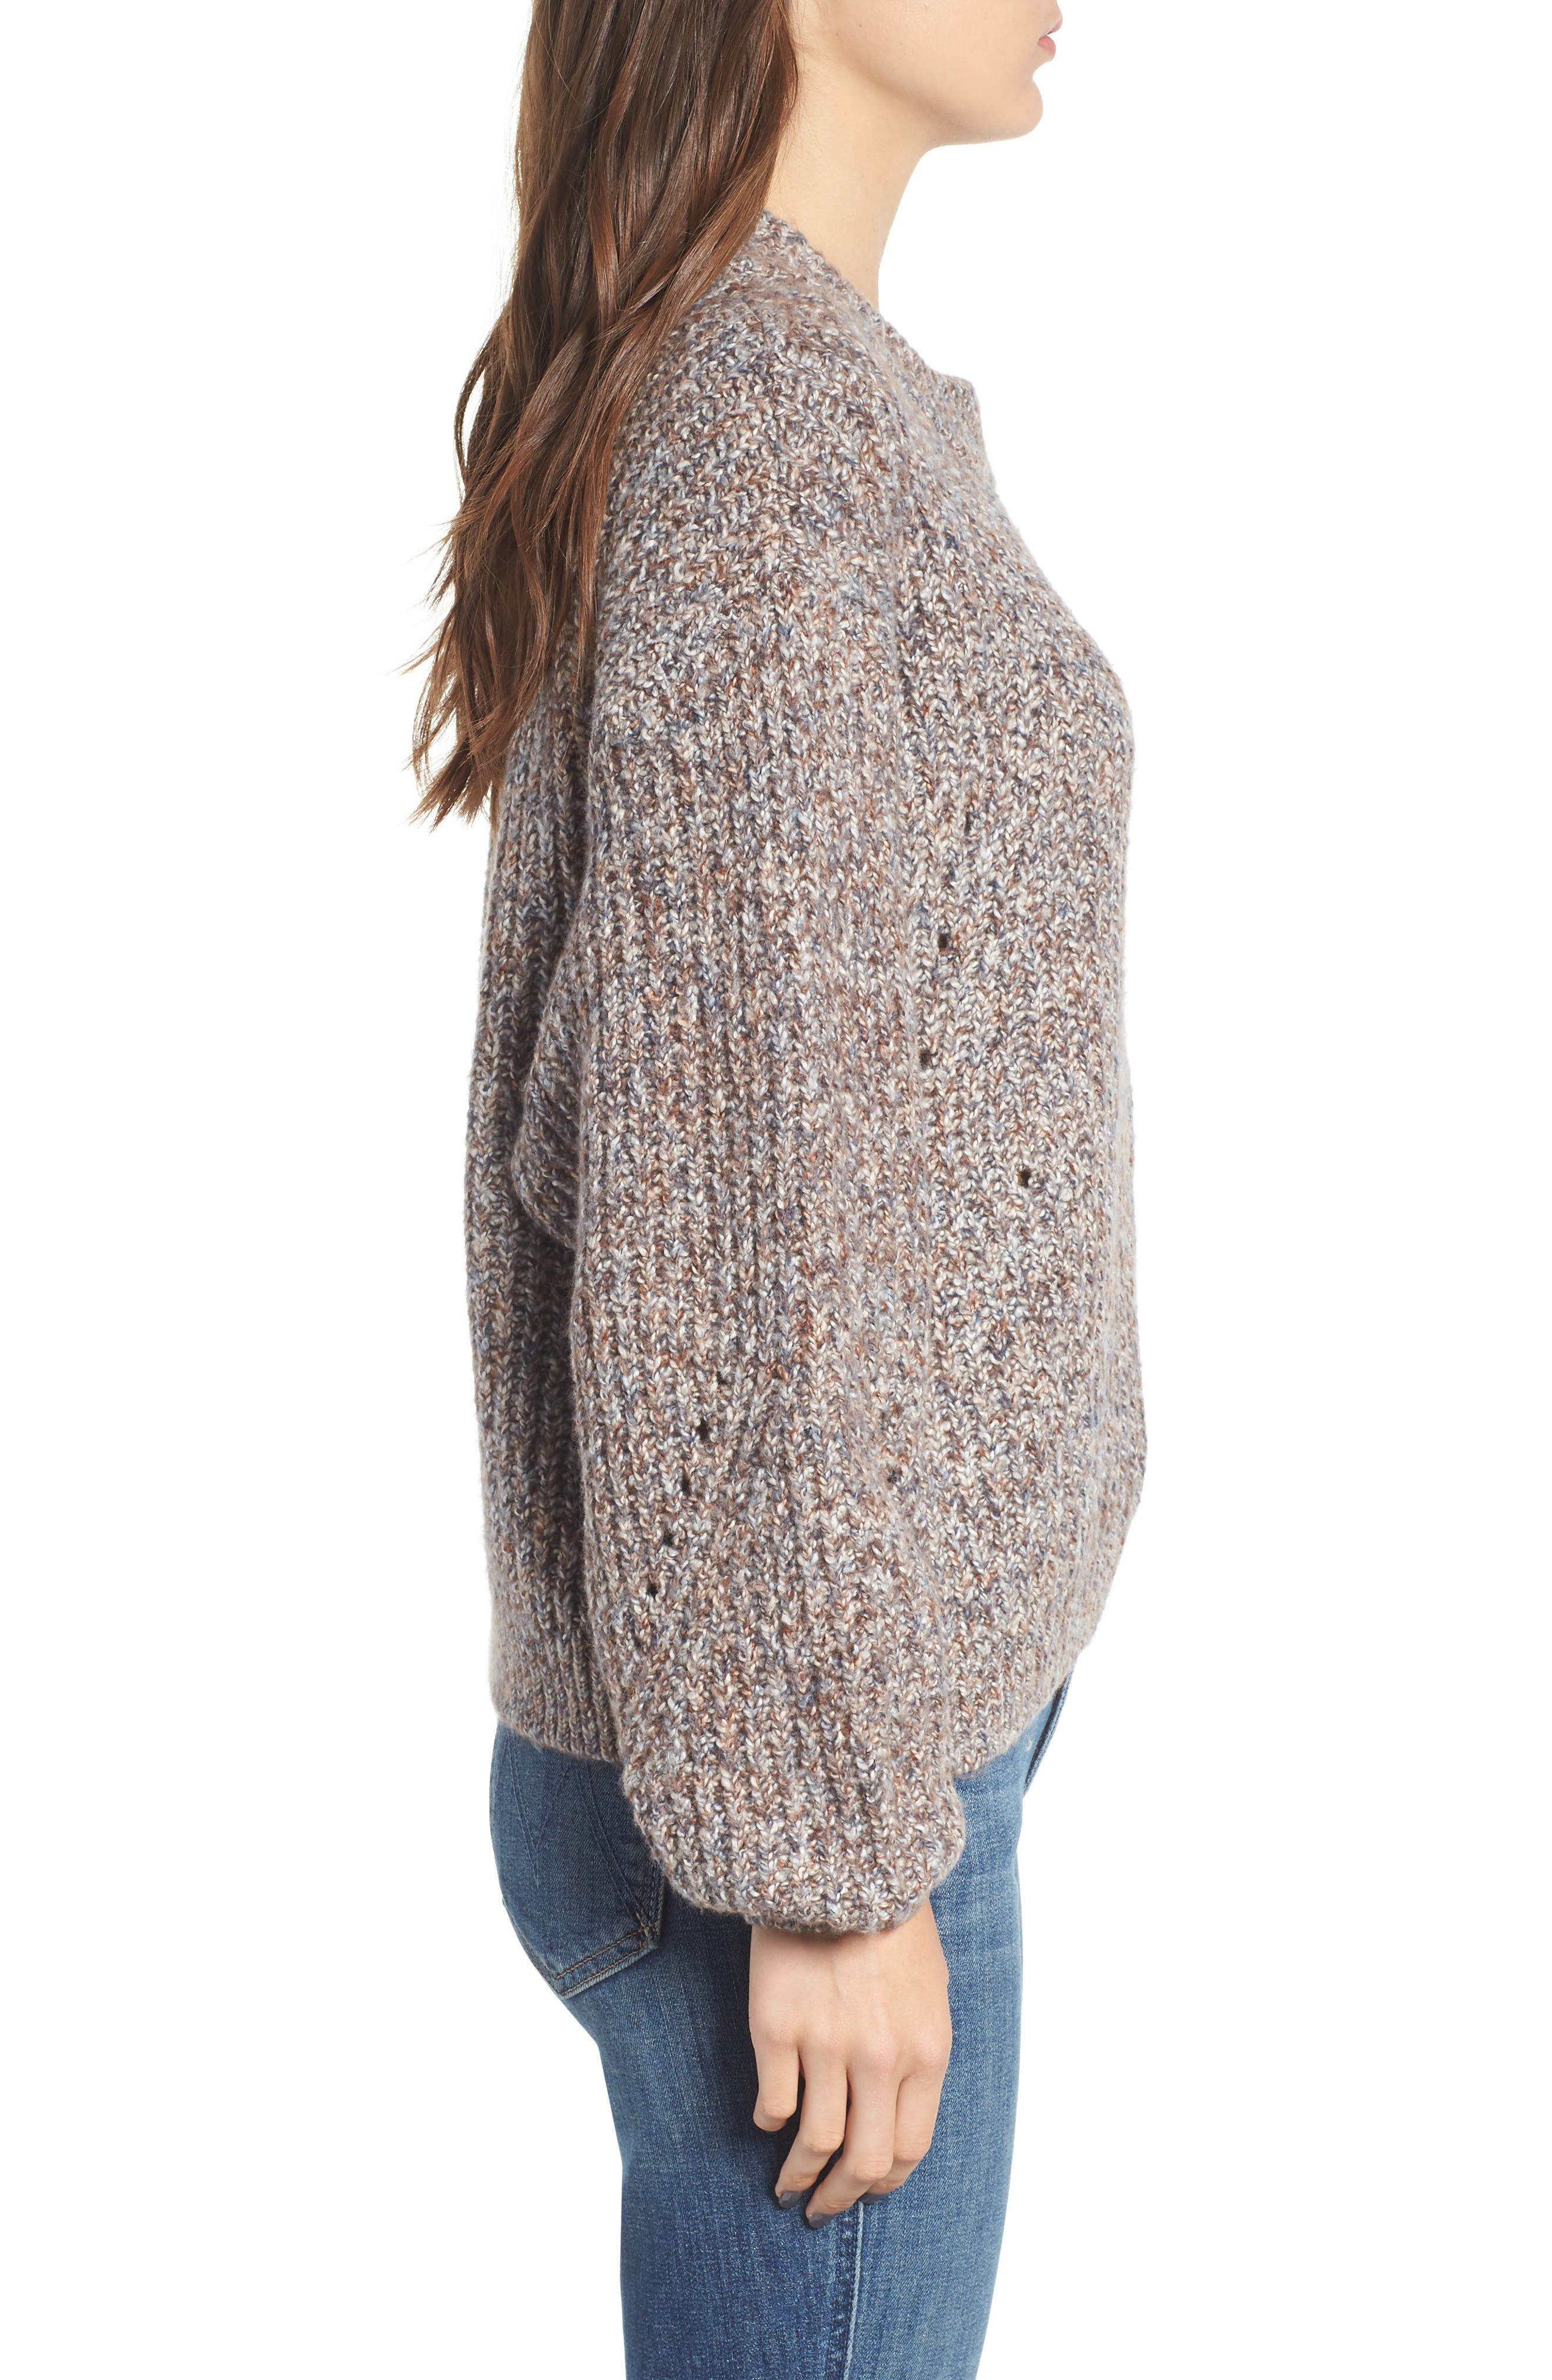 Heritage Stitch Sweater,                             Alternate thumbnail 3, color,                             021